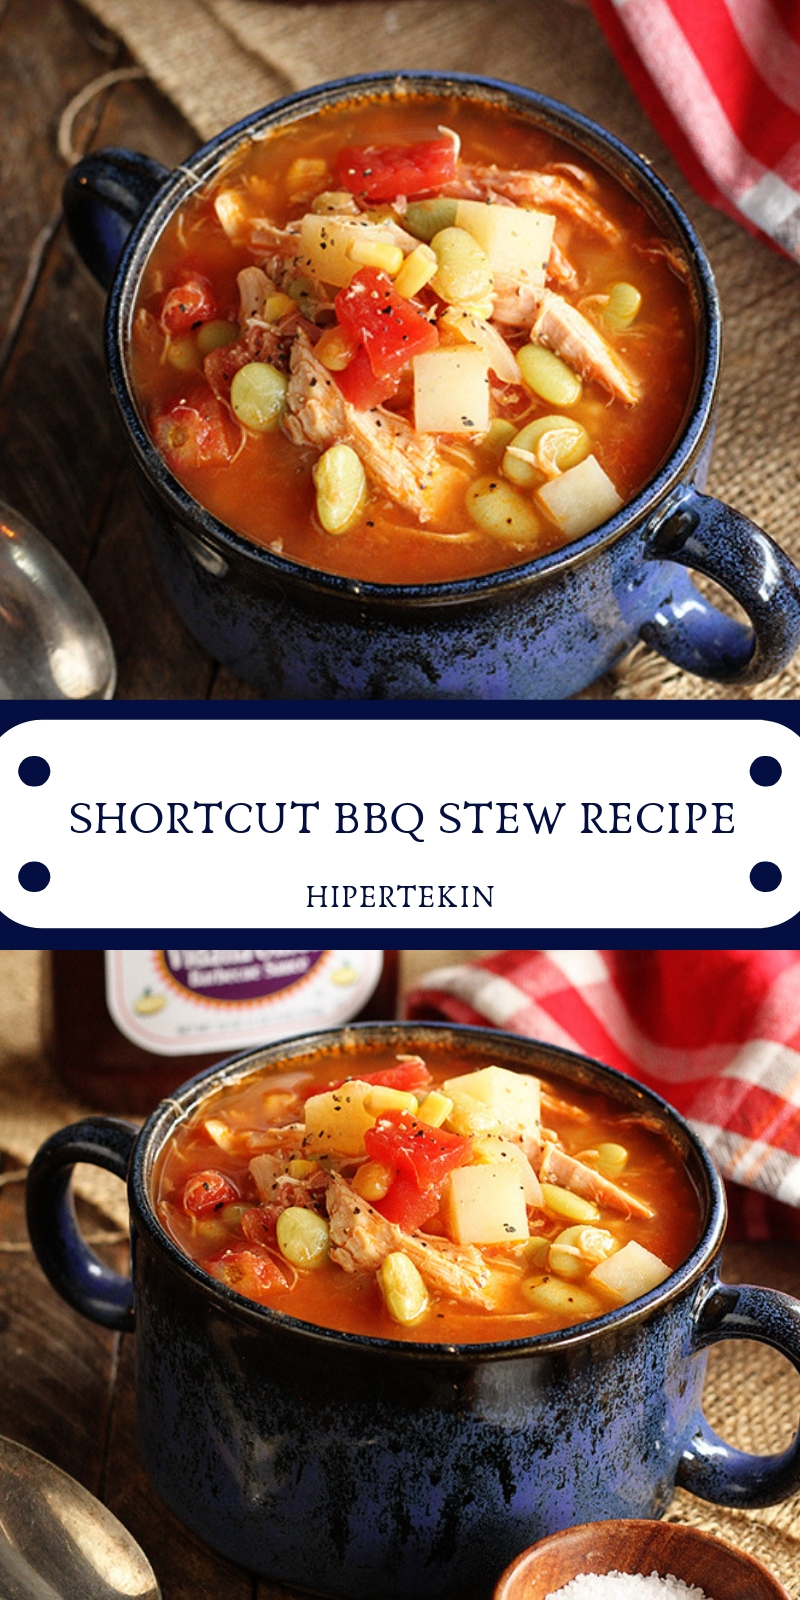 SHORTCUT BBQ STEW RECIPE